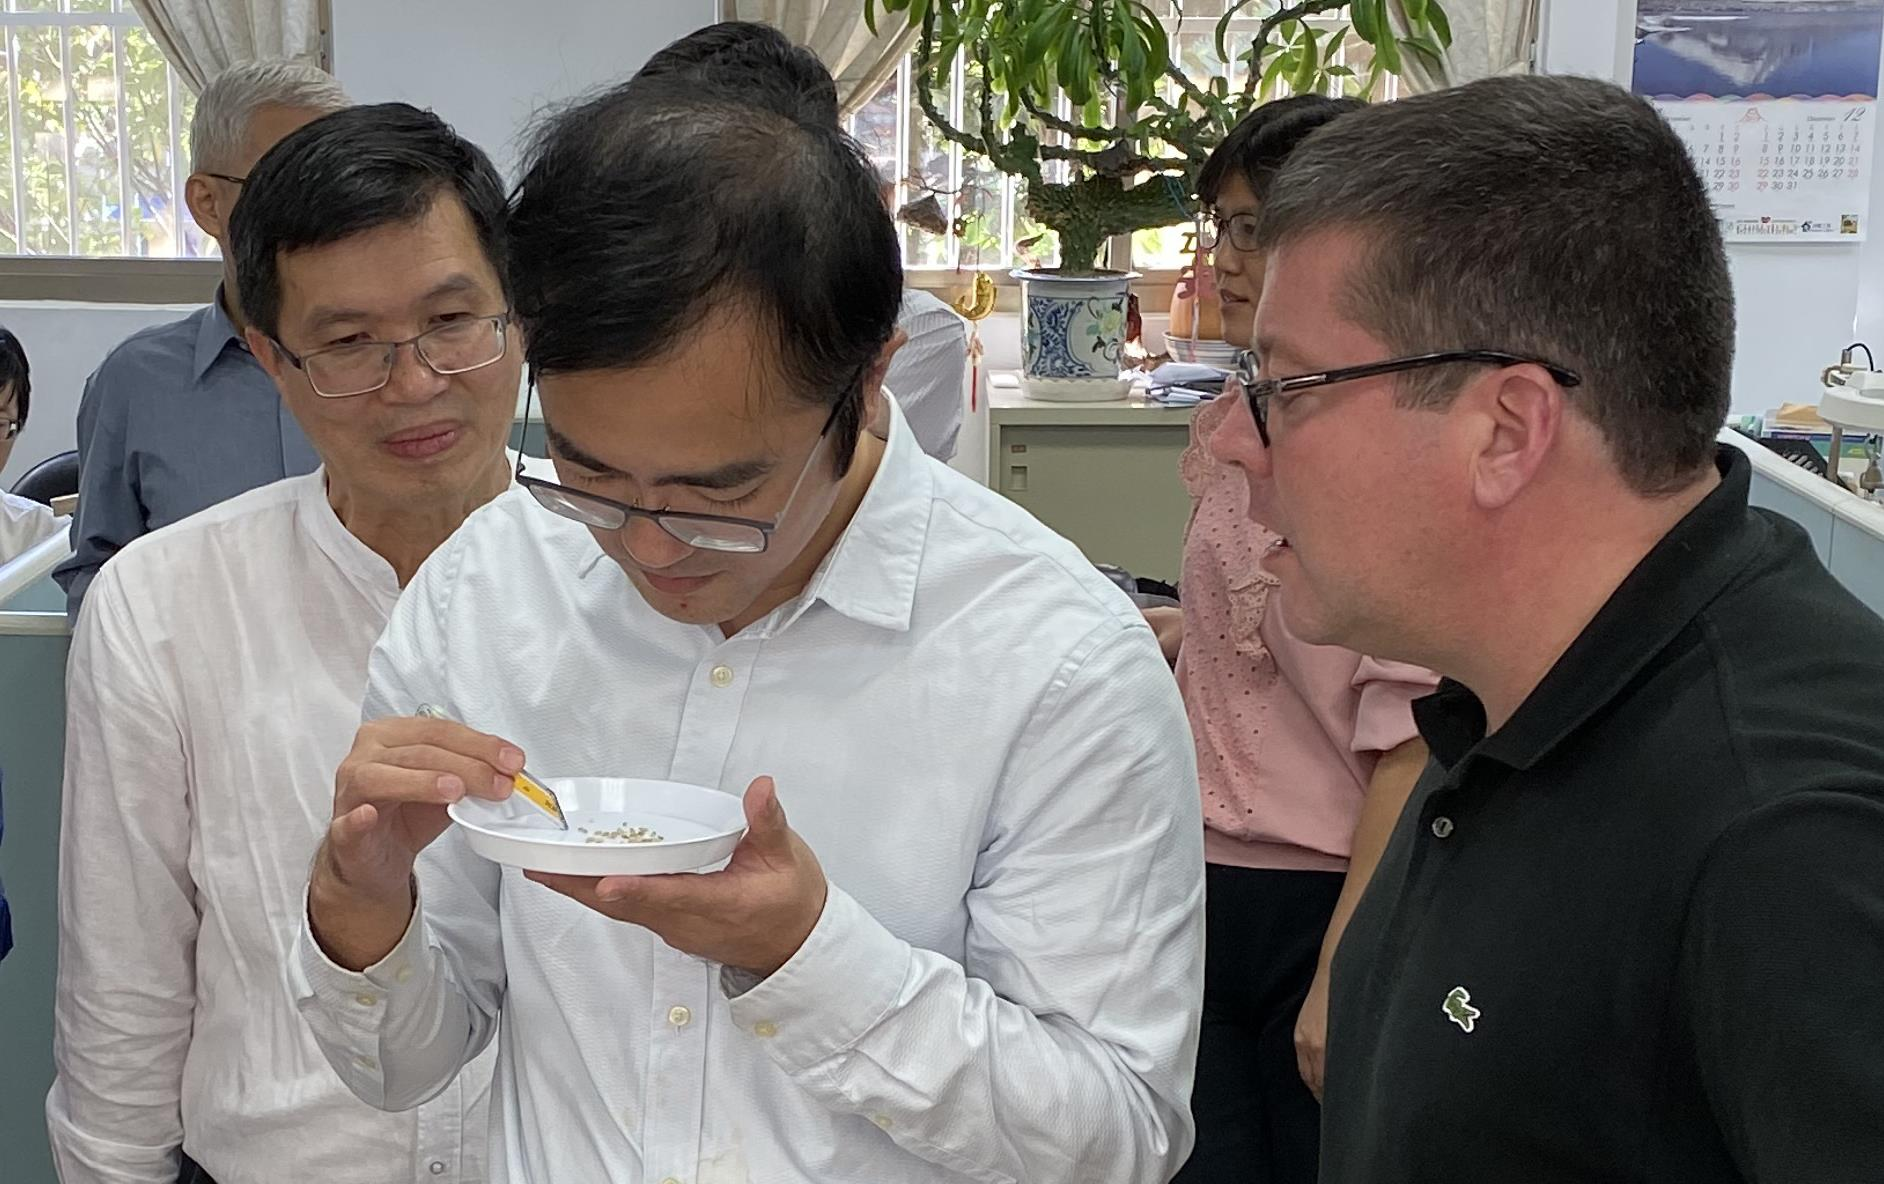 Asian men and one white man stand in front of table with rice samples and calculators, looking at rice grains in small white plate